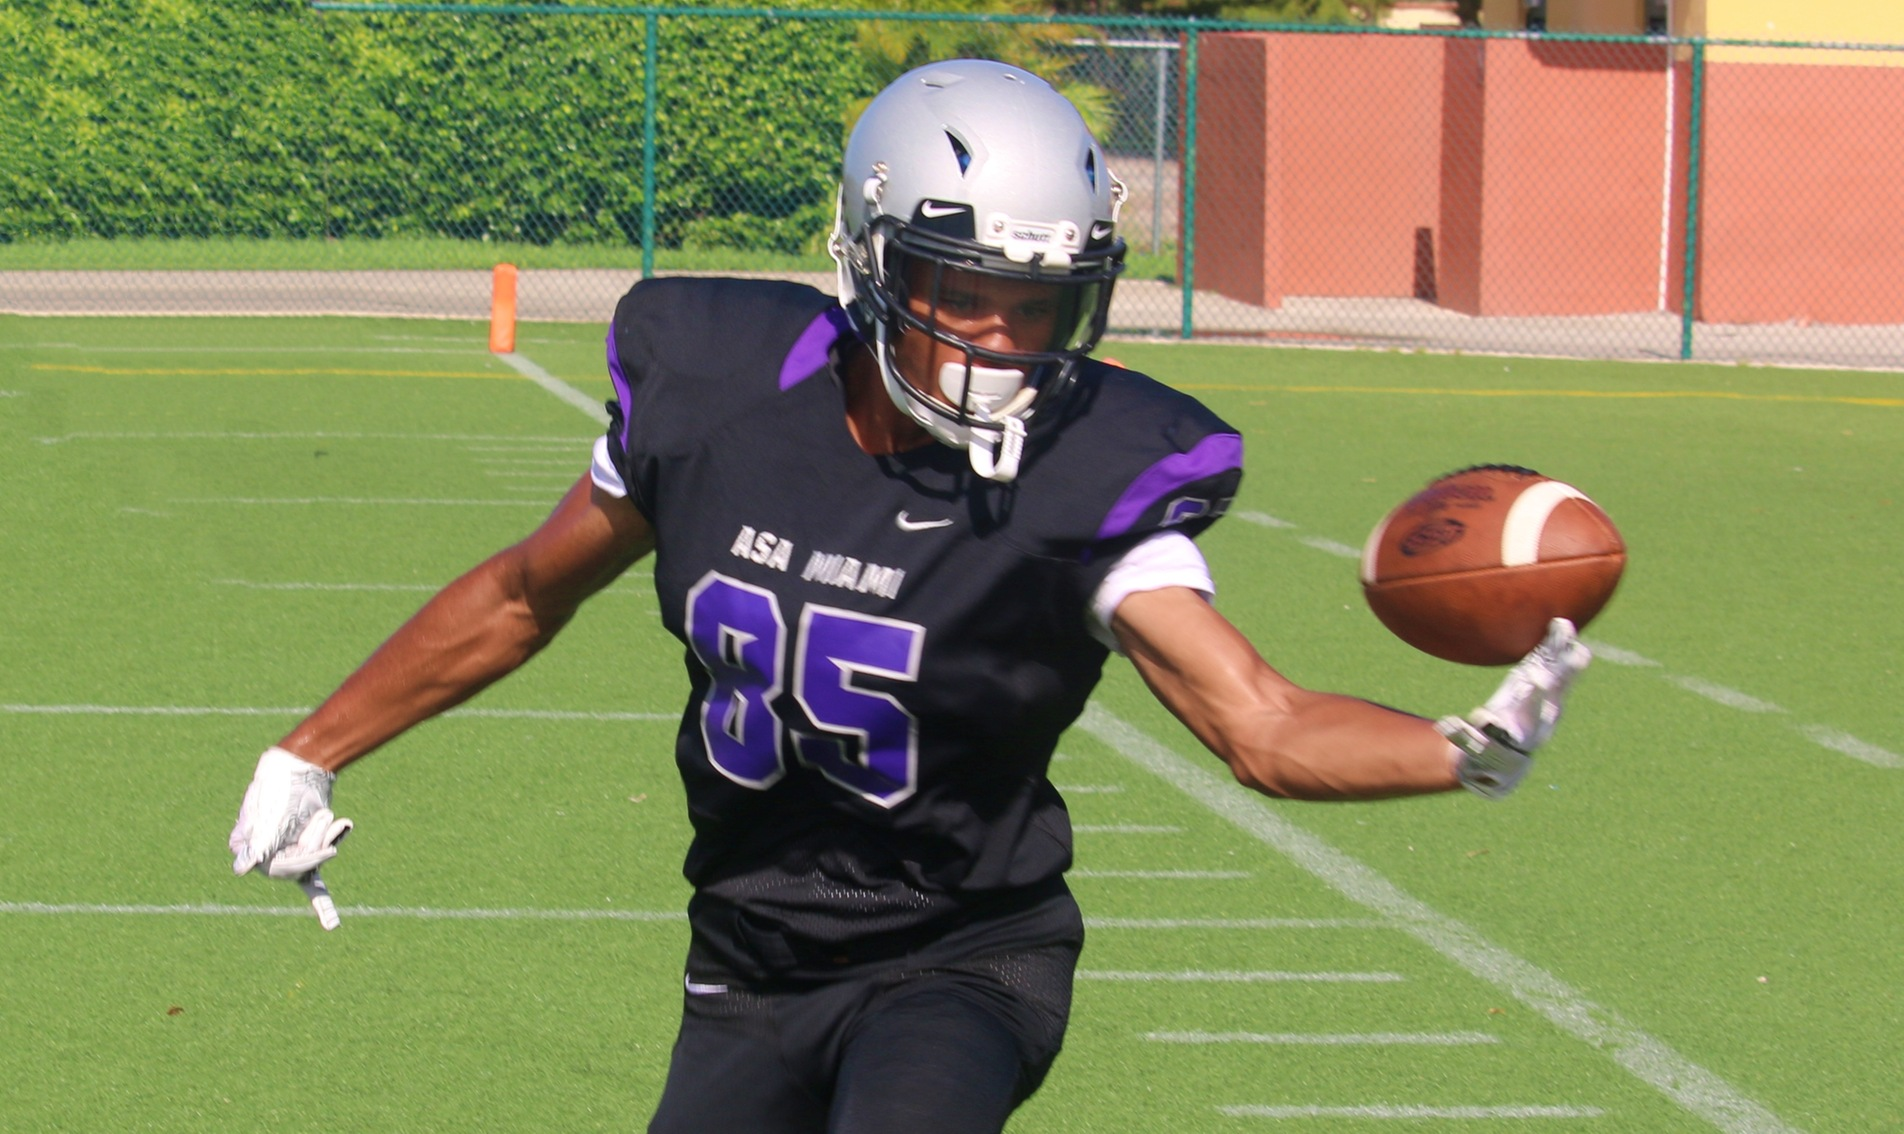 ASA Miami Falls To Lackawanna College 30-7